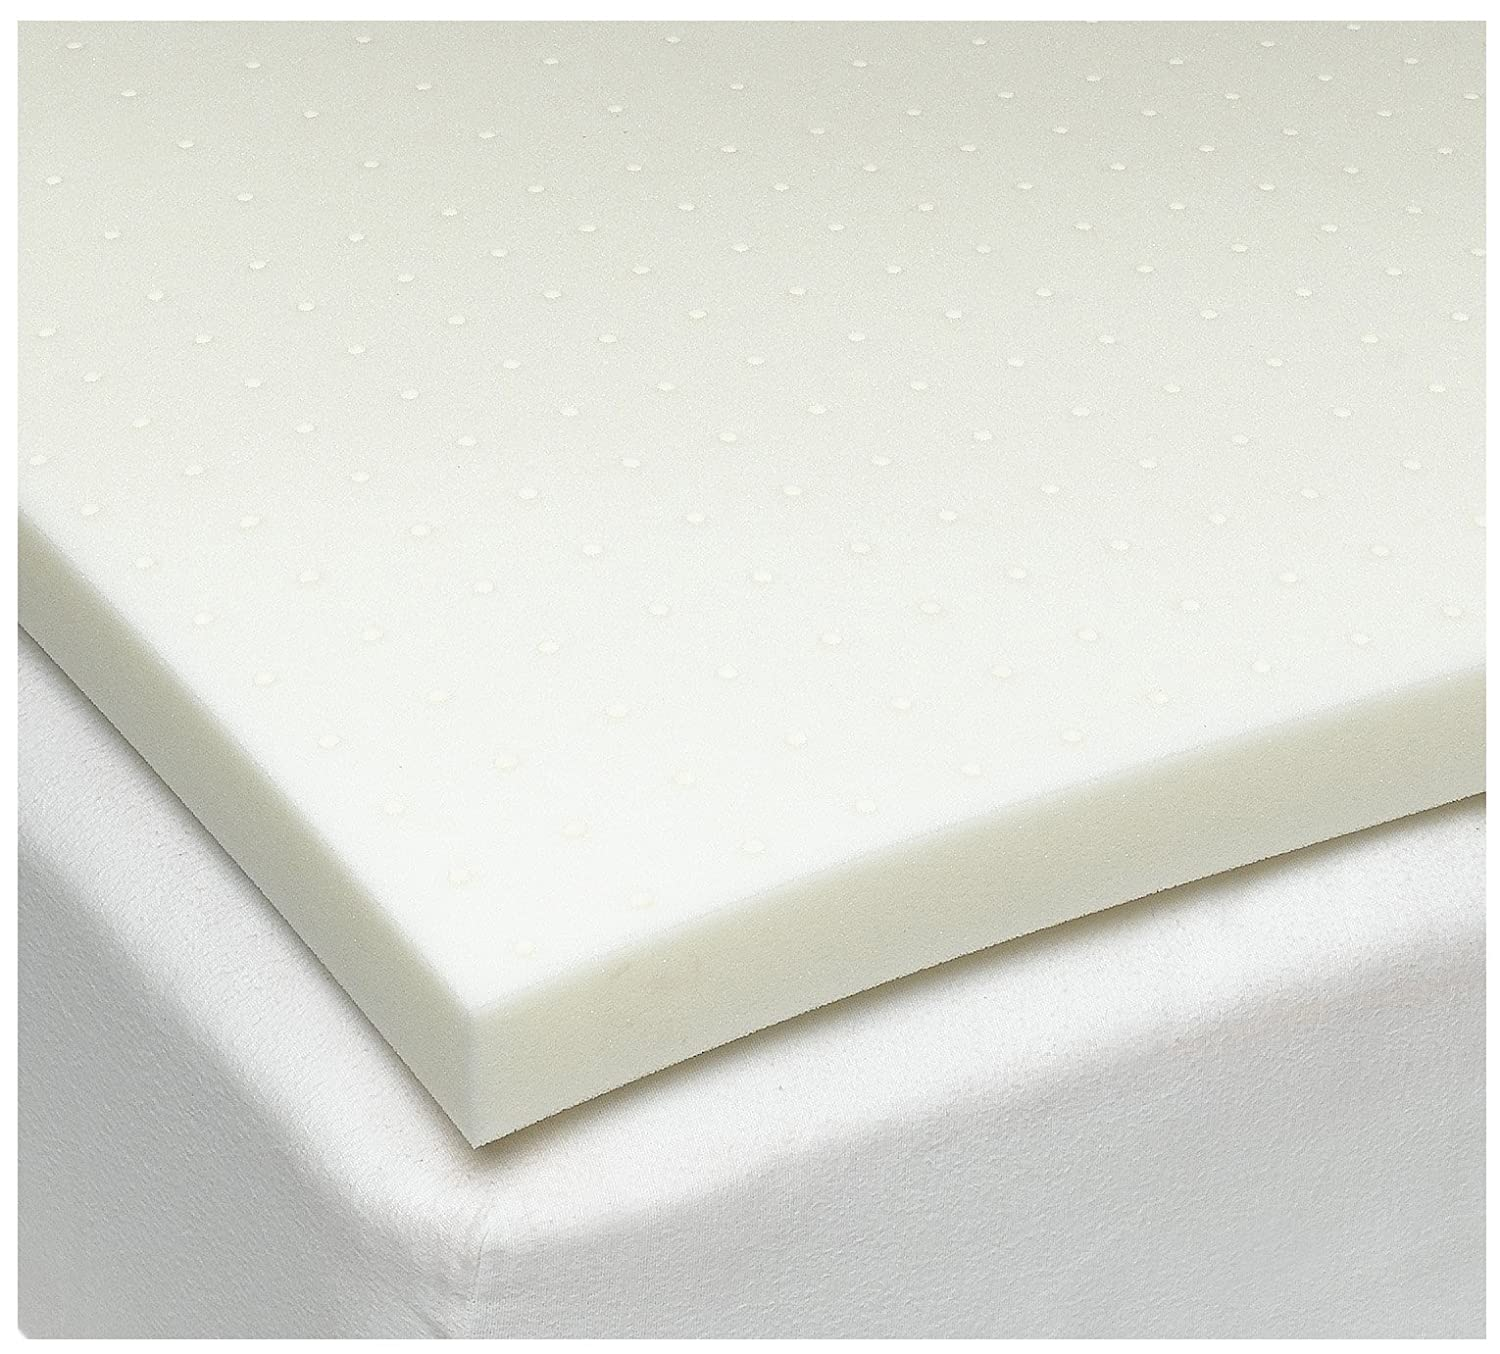 If you don't want a 4 inch memory foam mattress topper and would prefer a 2 inch one, then take a look at this product by Sleep Joy.